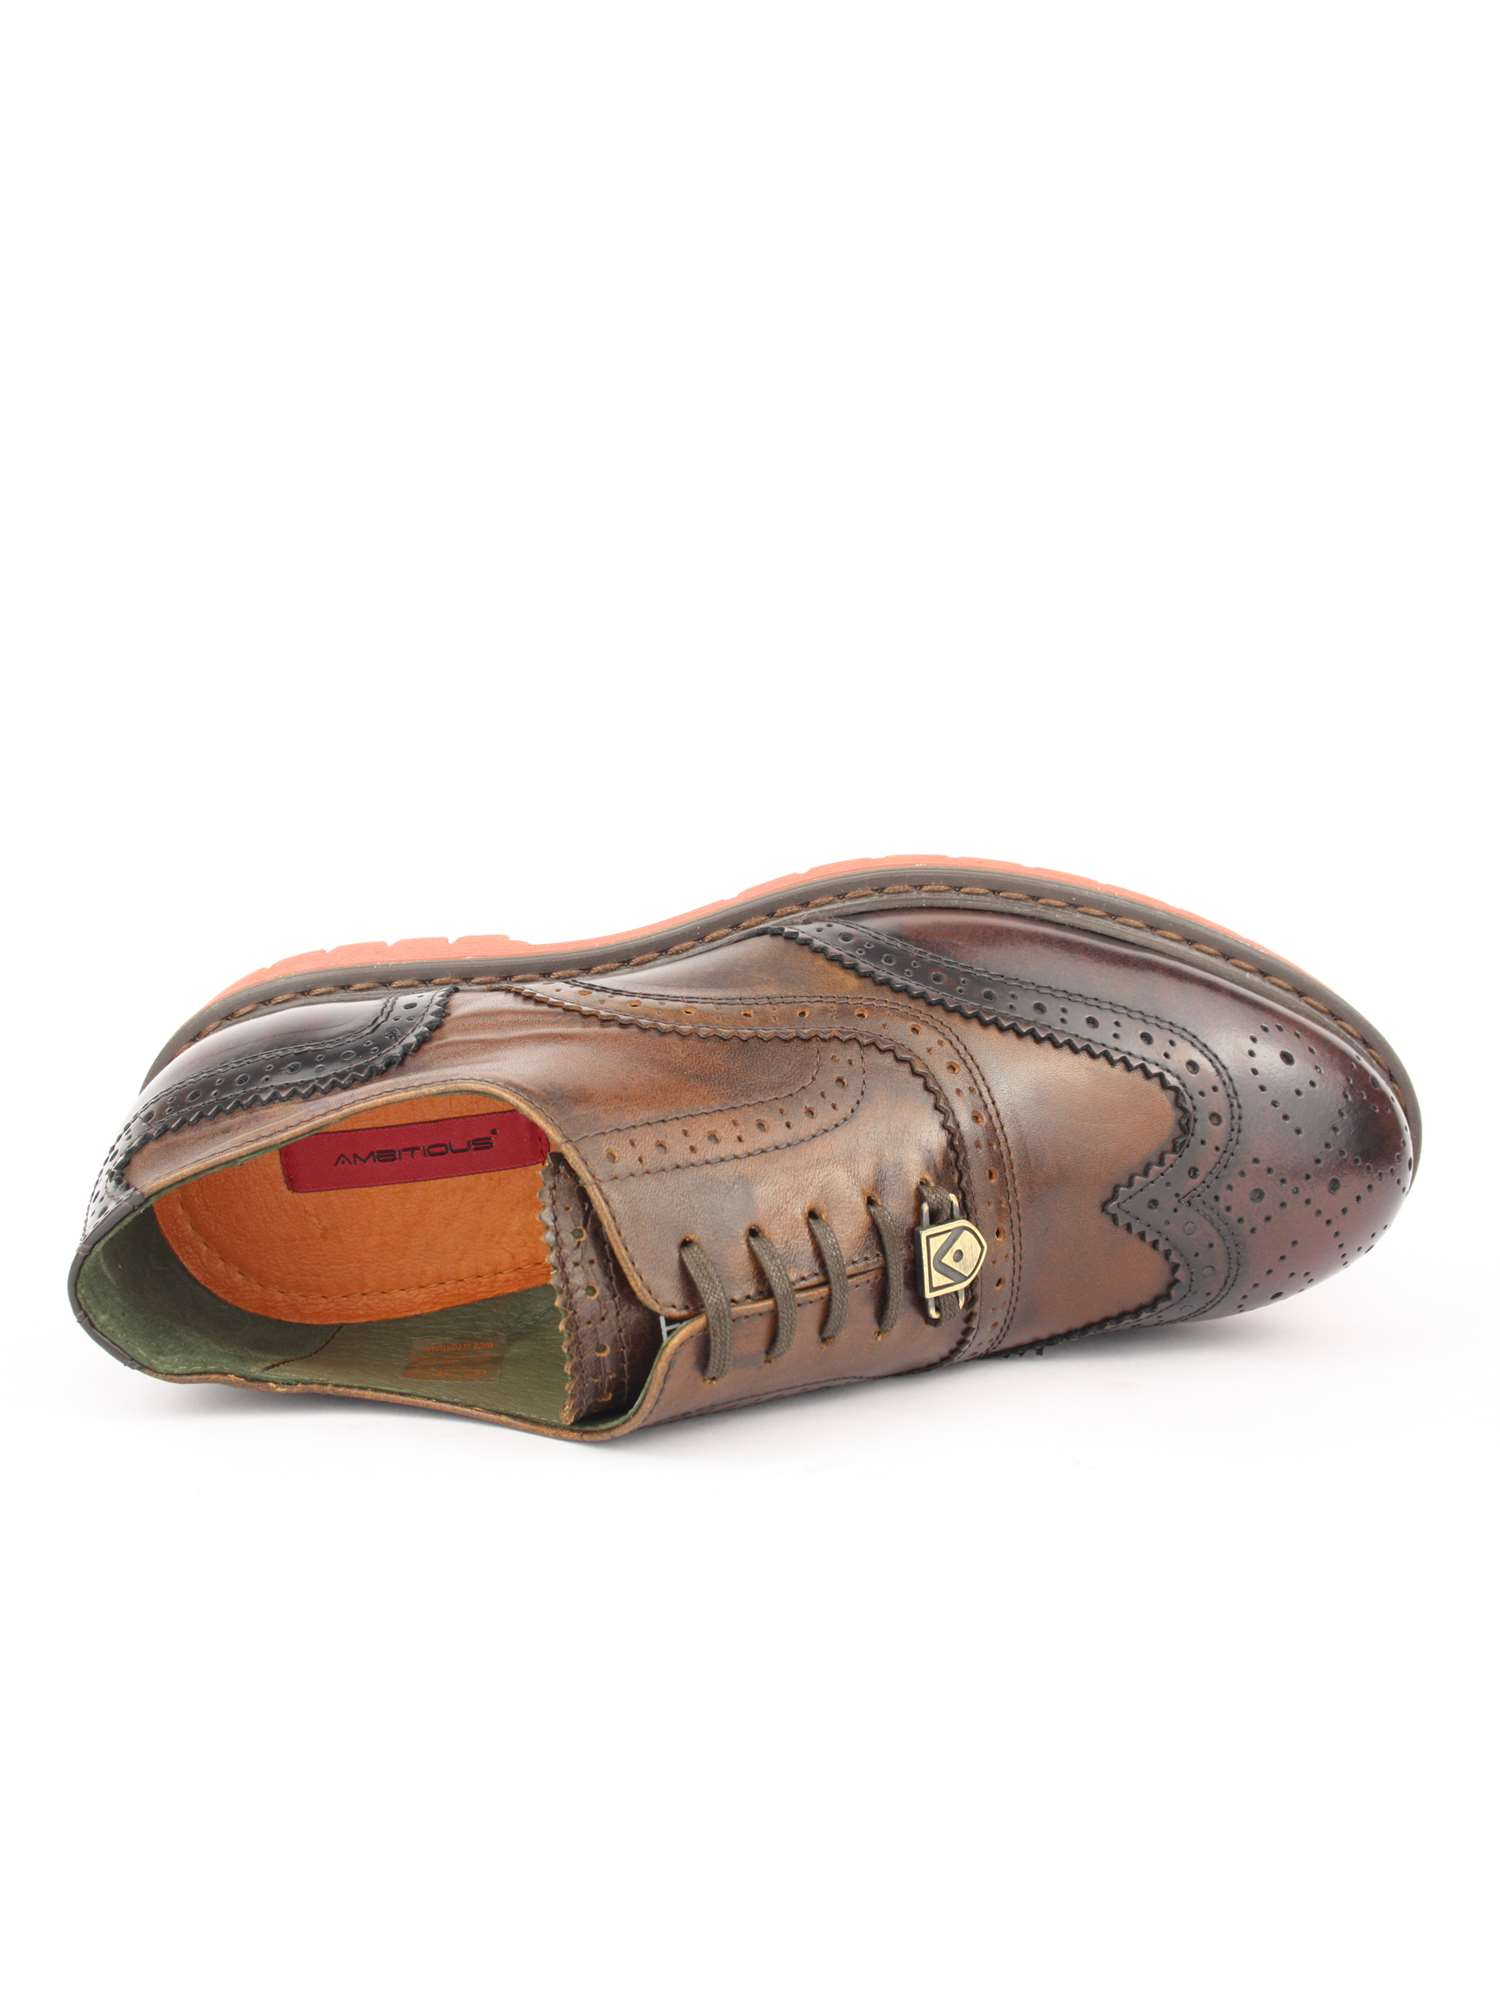 Ambitious Shoes Lacci Scarpa Tipo Inglese Marron  577bfb8453a